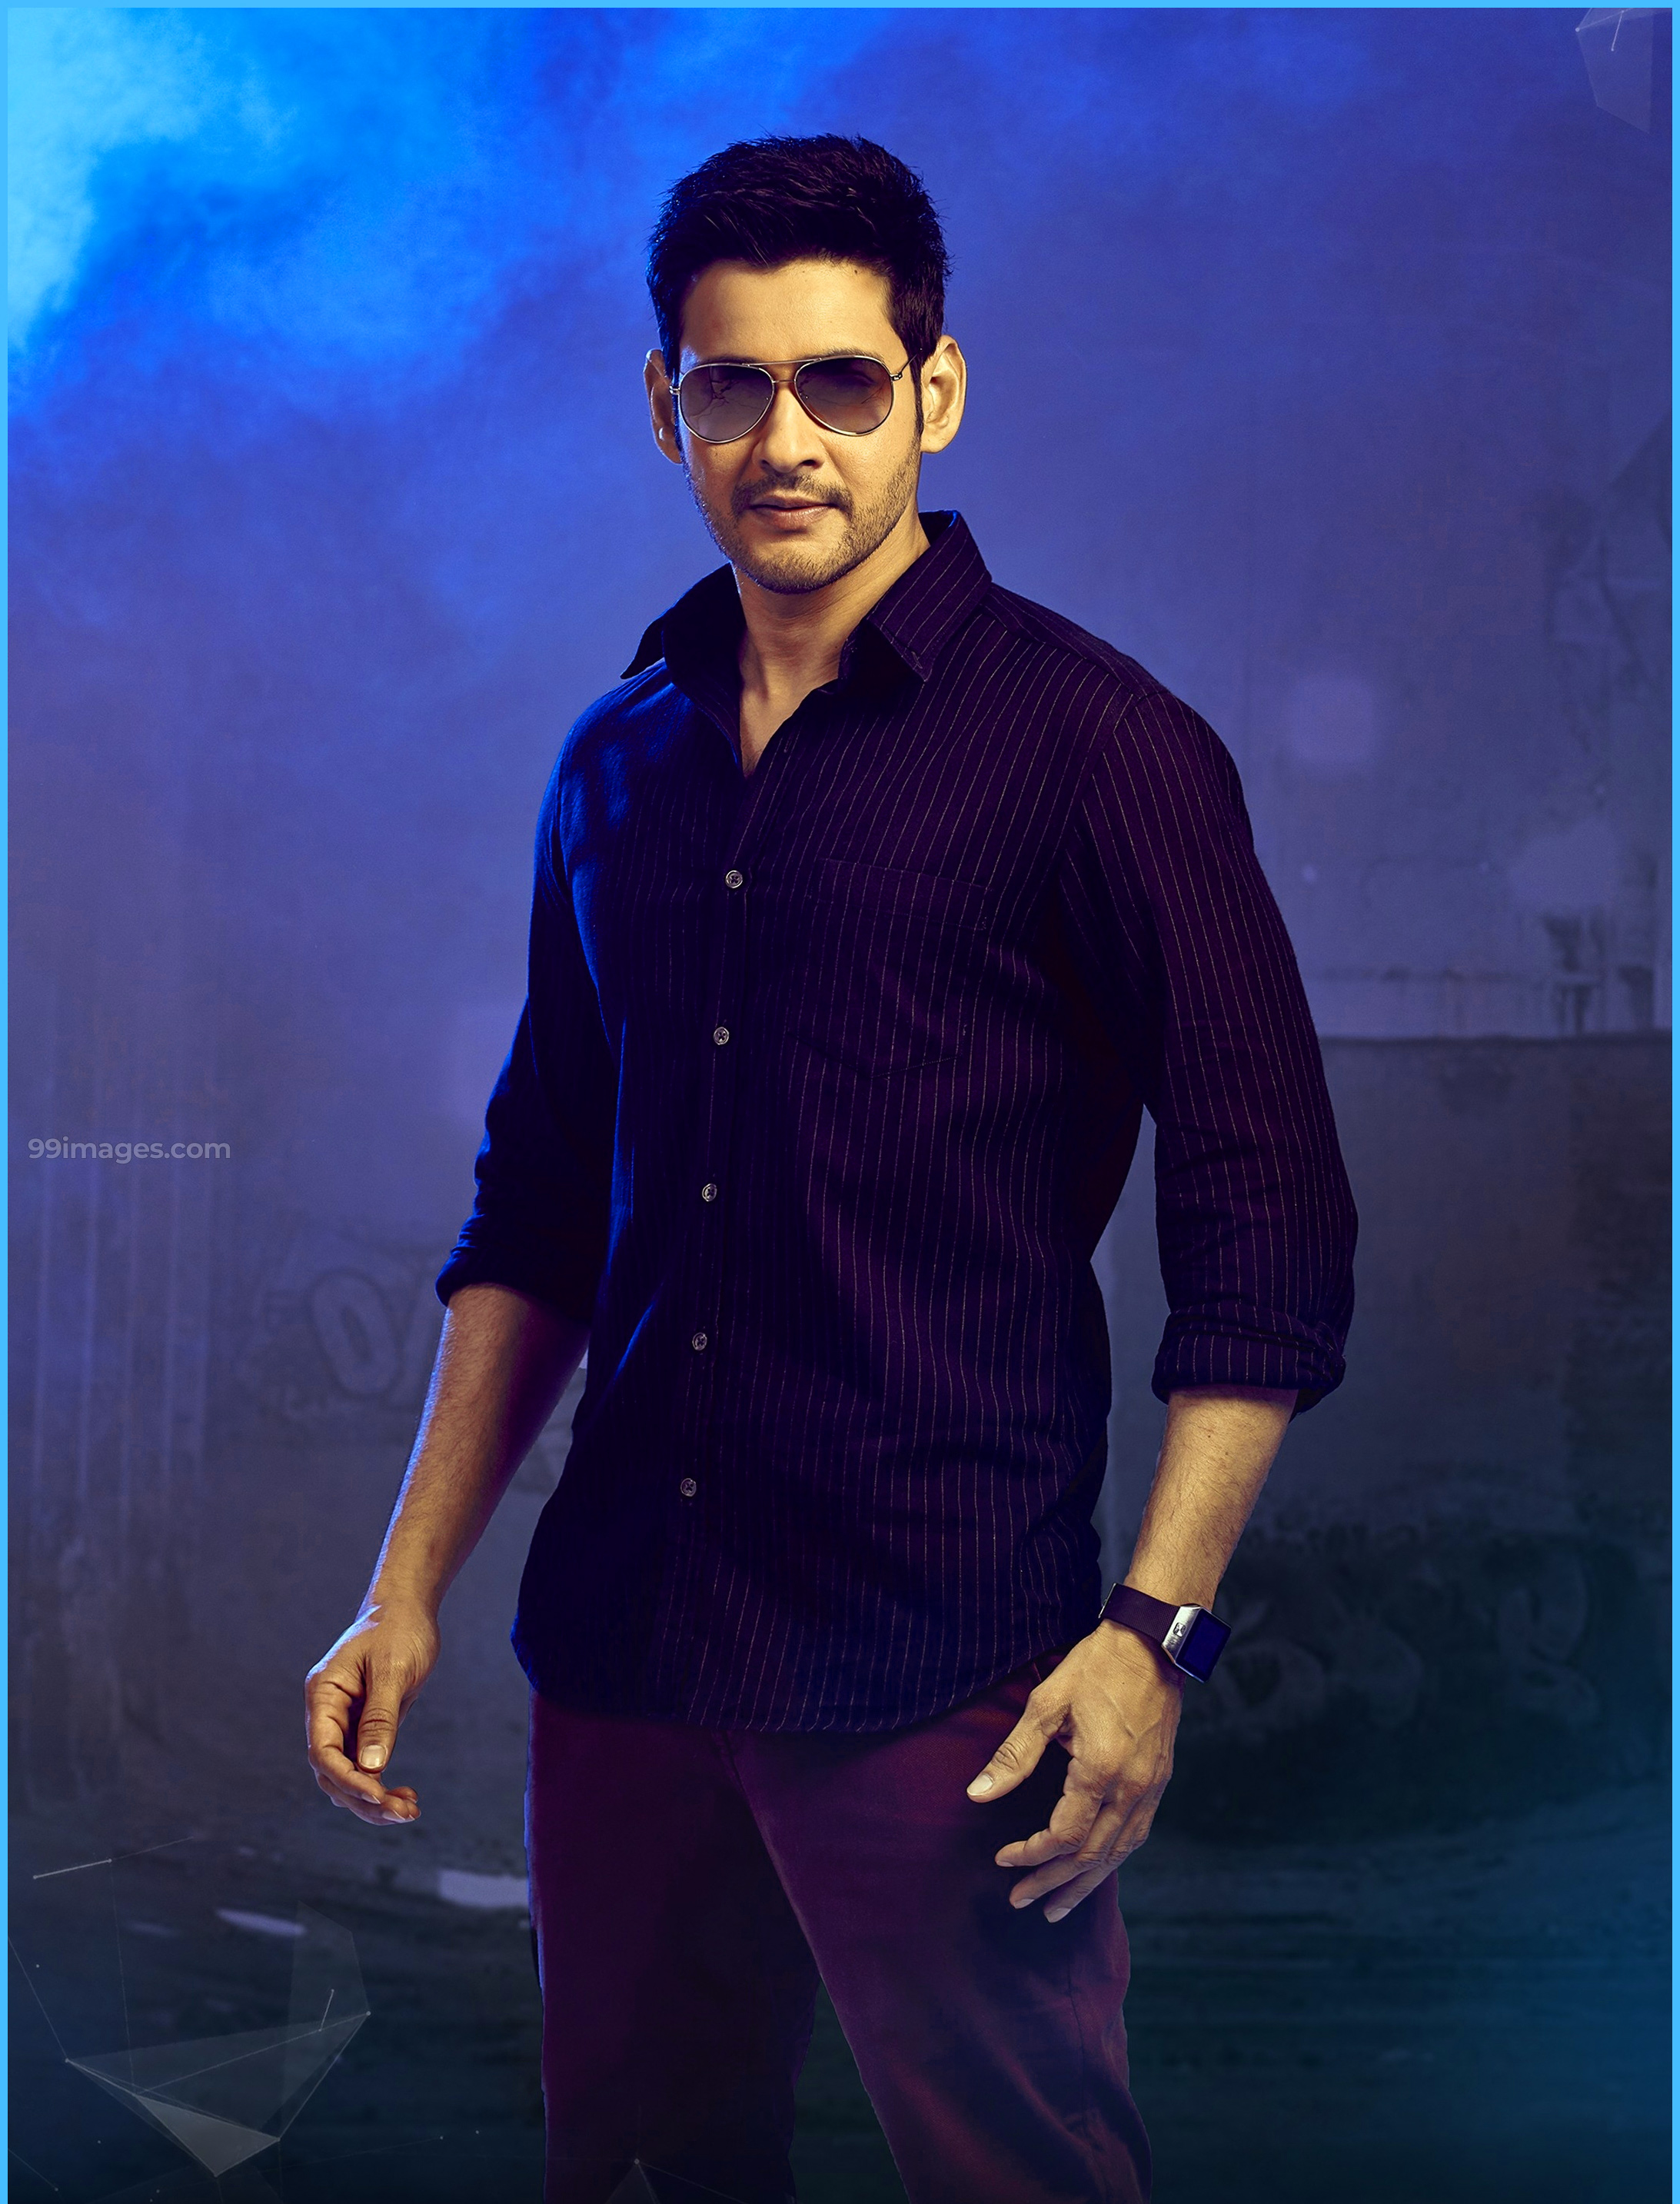 Mahesh babu images Pictures Wallpaper for WhatsappMahesh babu Images (3)